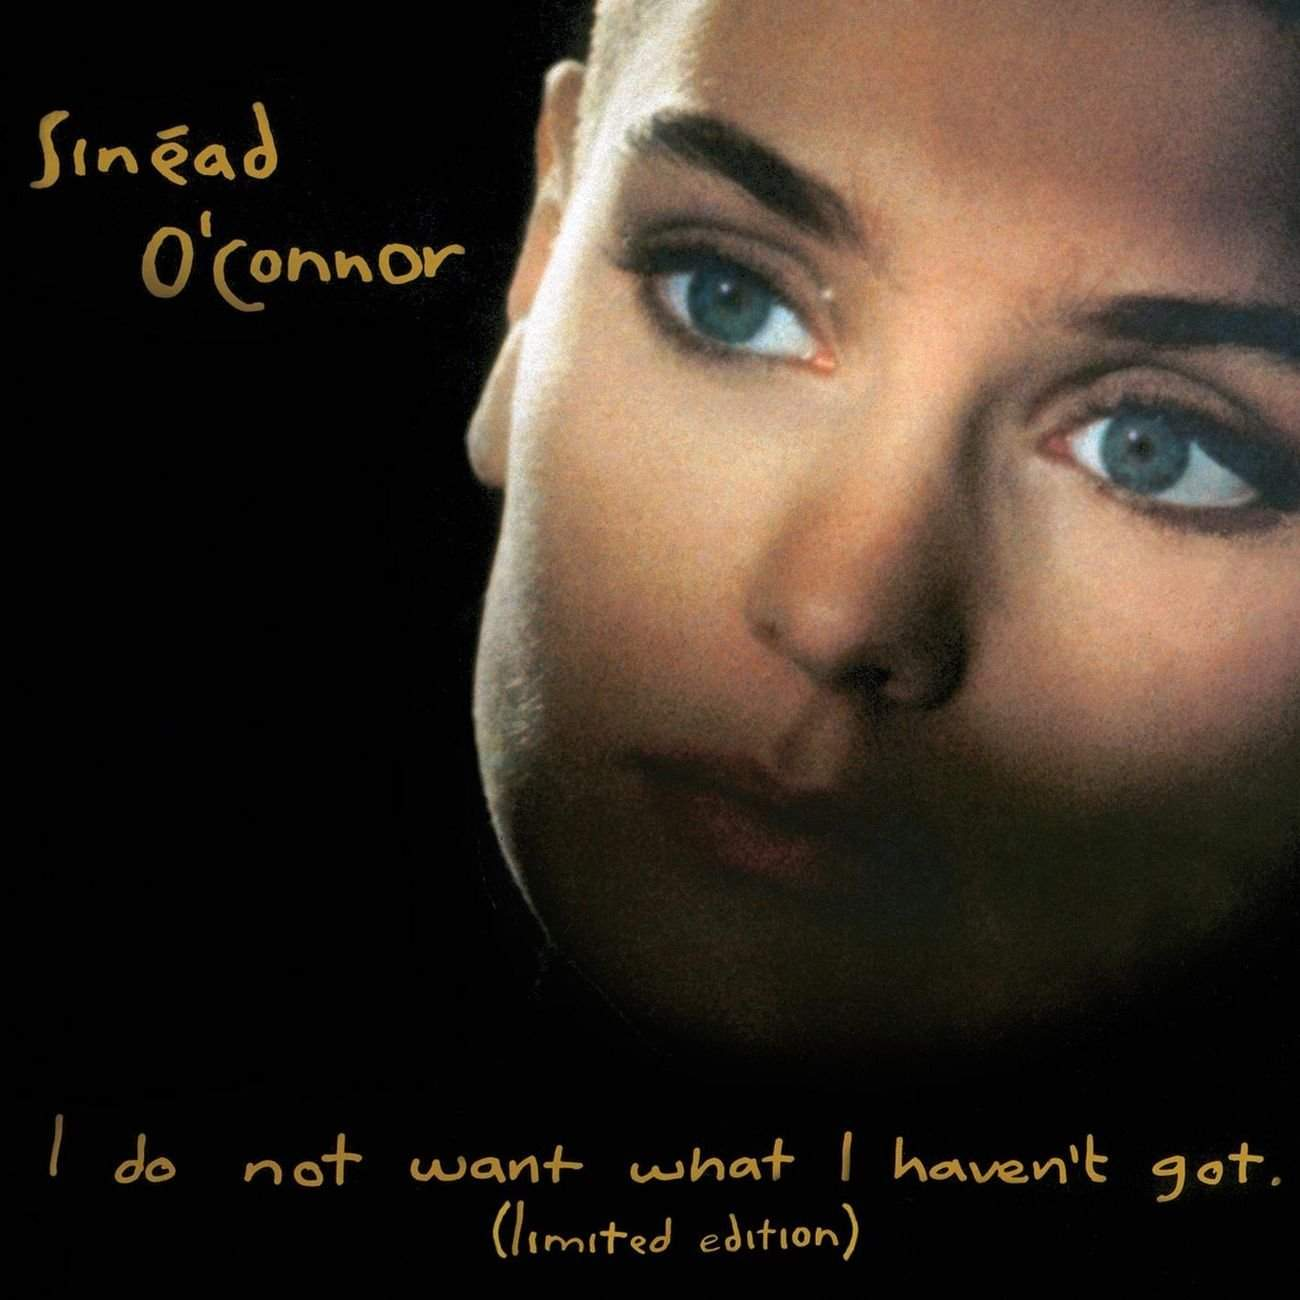 Sinead O'Connor Missing–Police Classify Her As Suicidal